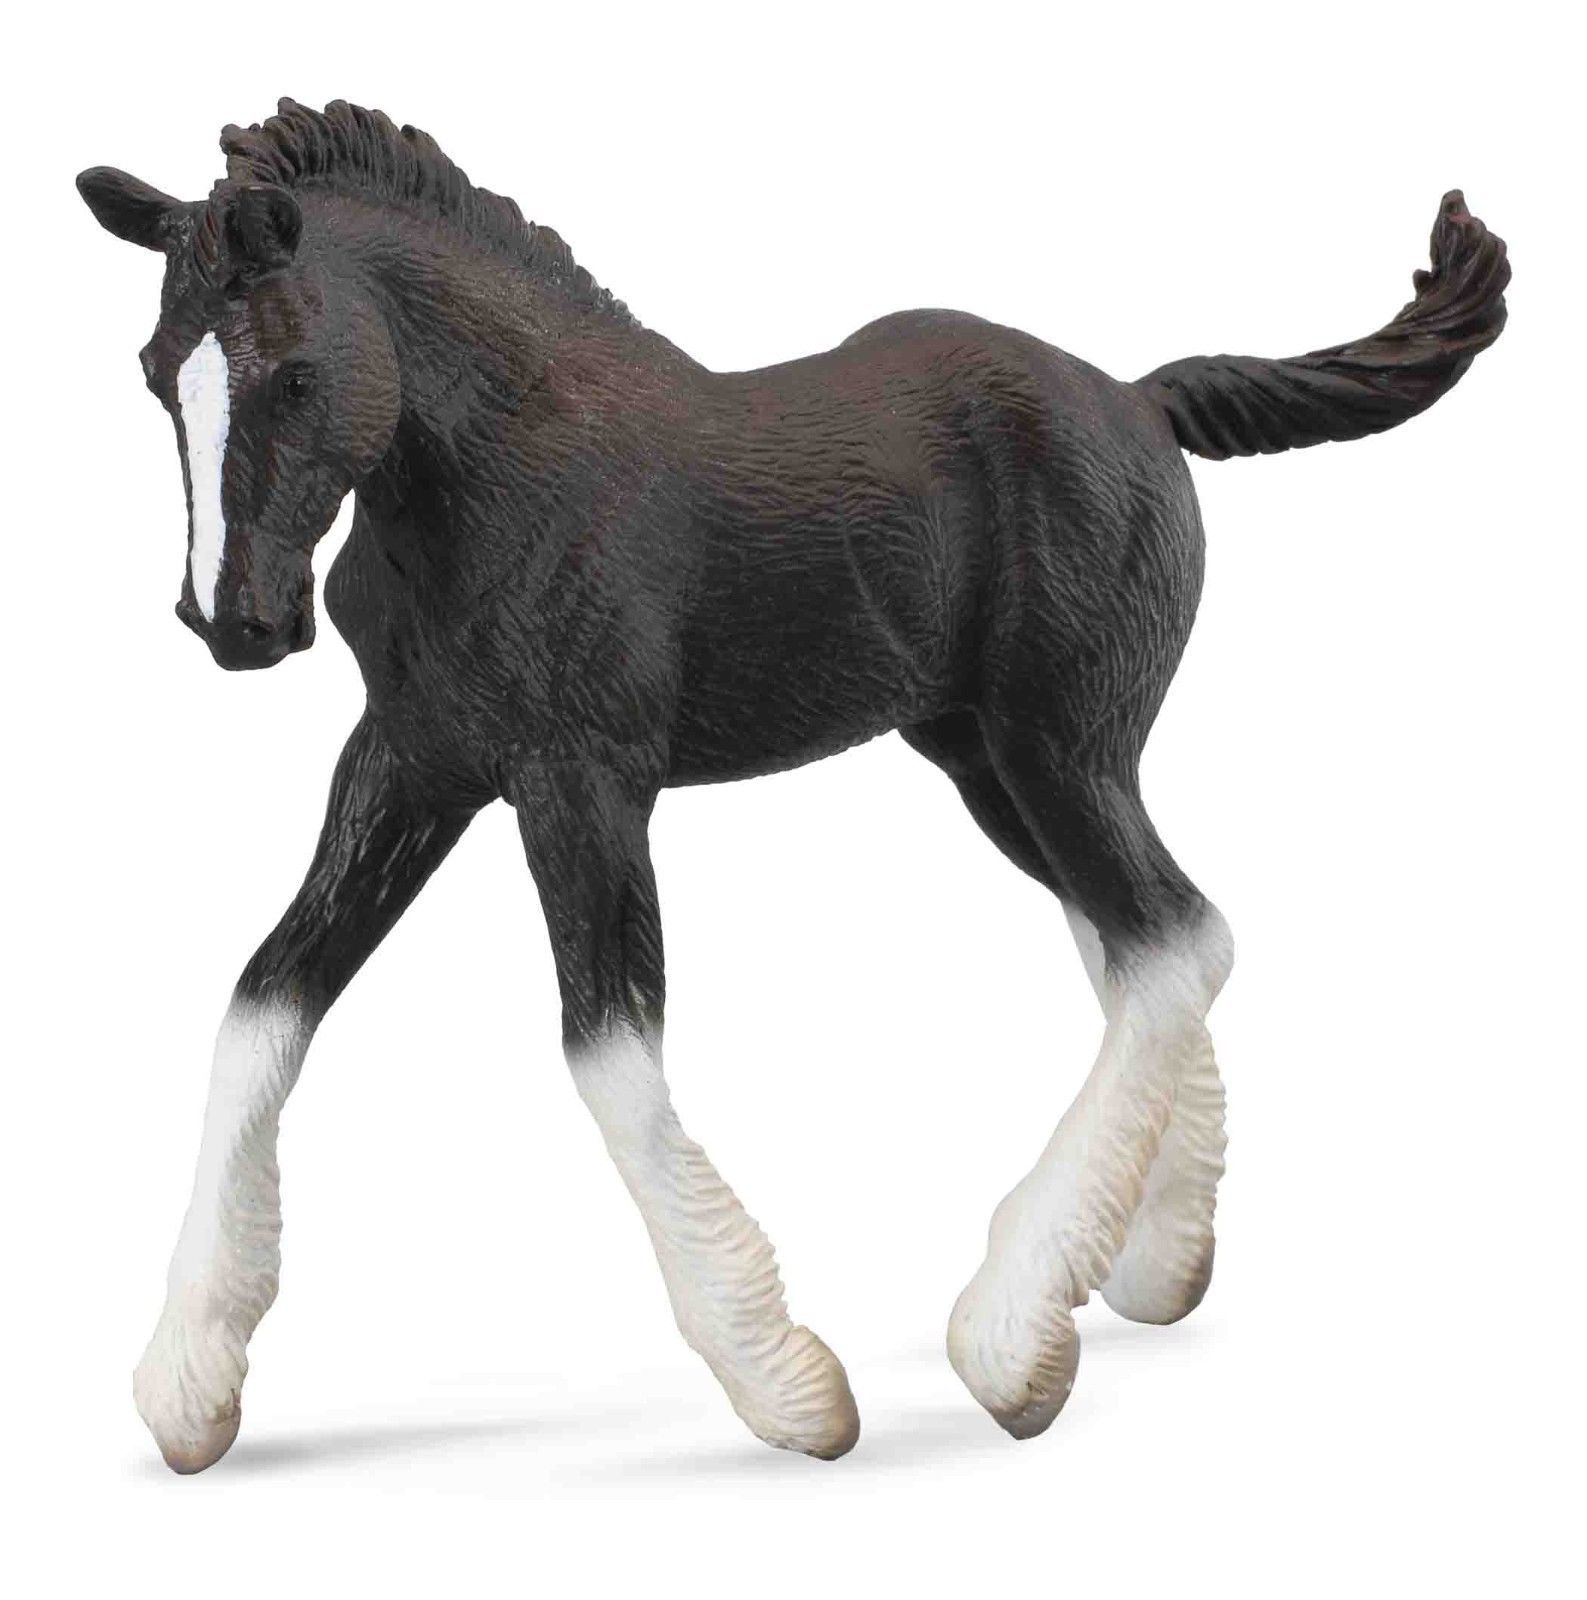 Collecta Black Shire Horse Foal Toy Model Figure 88583 New With Tag 11 29 Shire Horse Horses Foals [ 1600 x 1587 Pixel ]